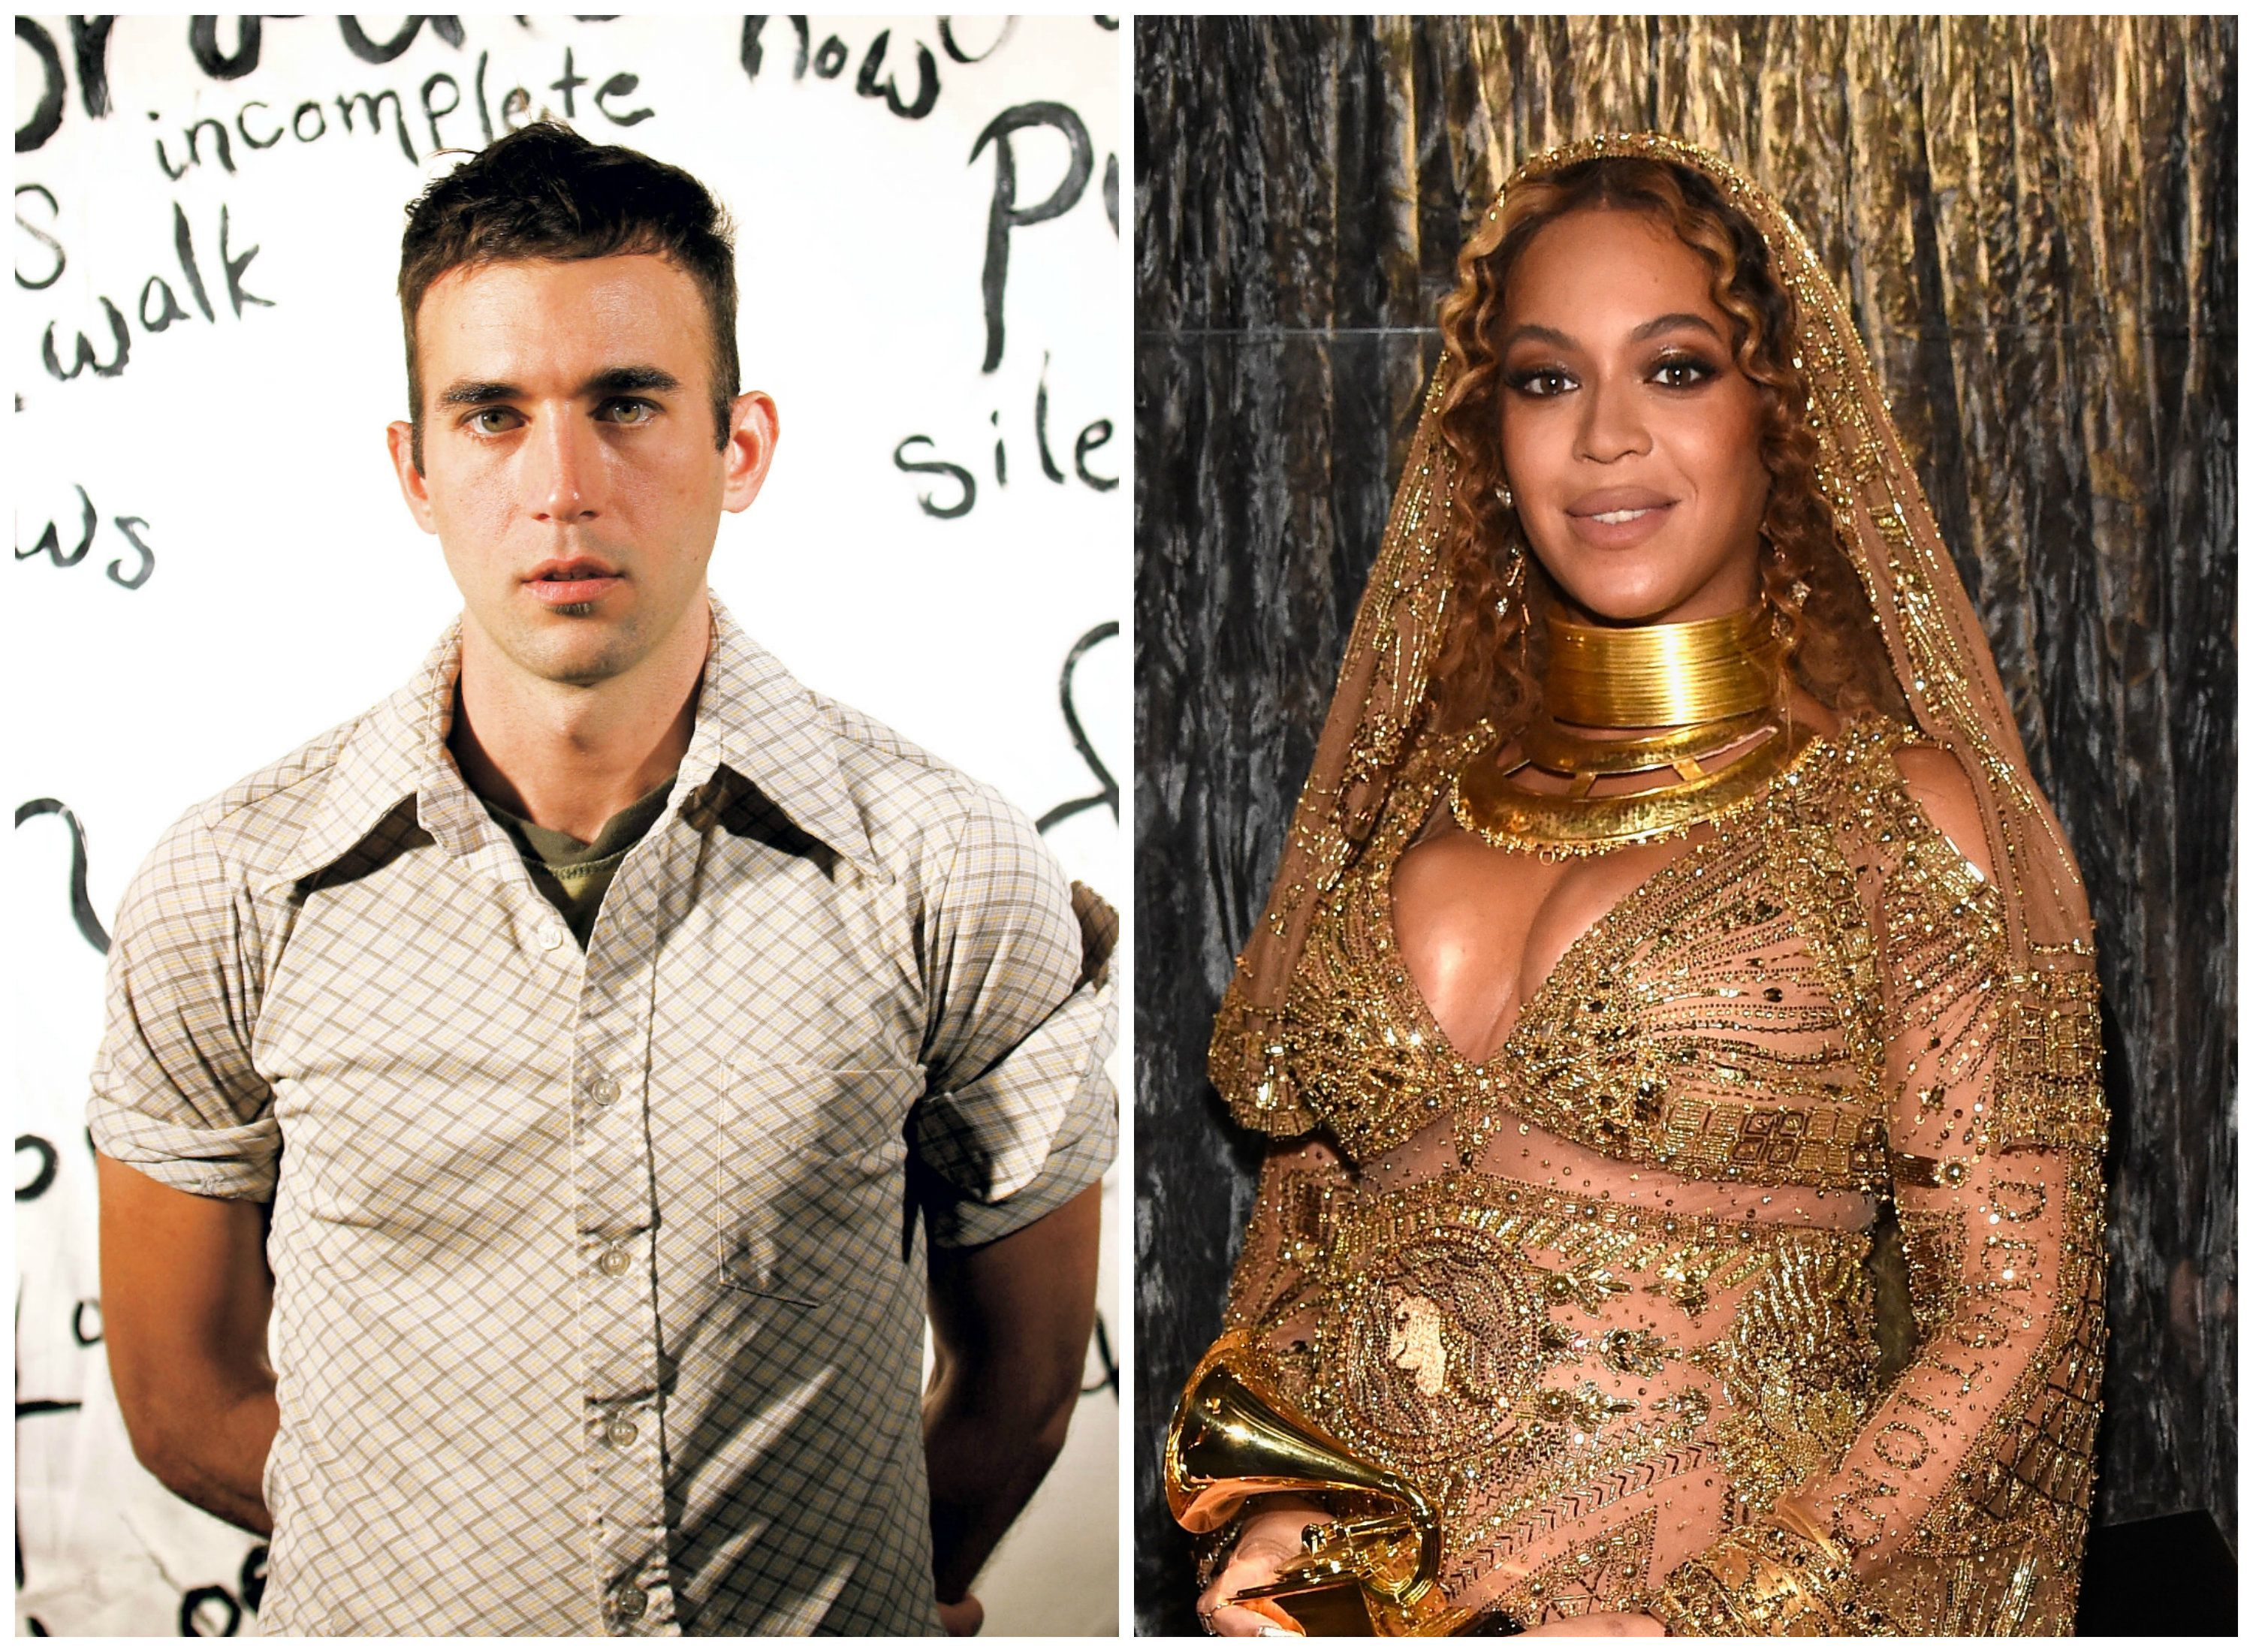 Sufjan Stevens believes the Grammys treated Beyoncé badly.